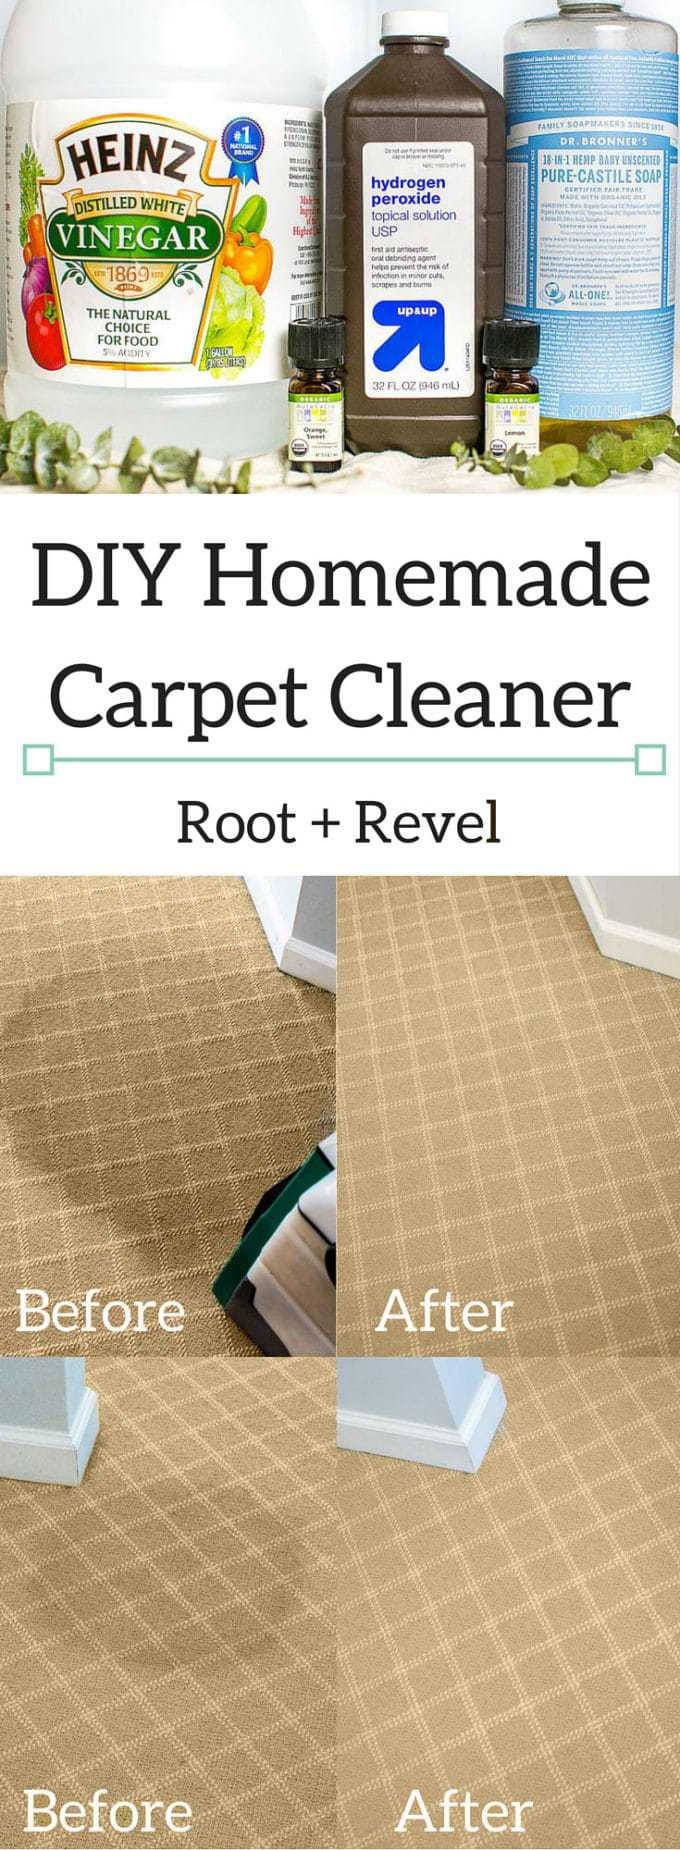 diy homemade carpet cleaner